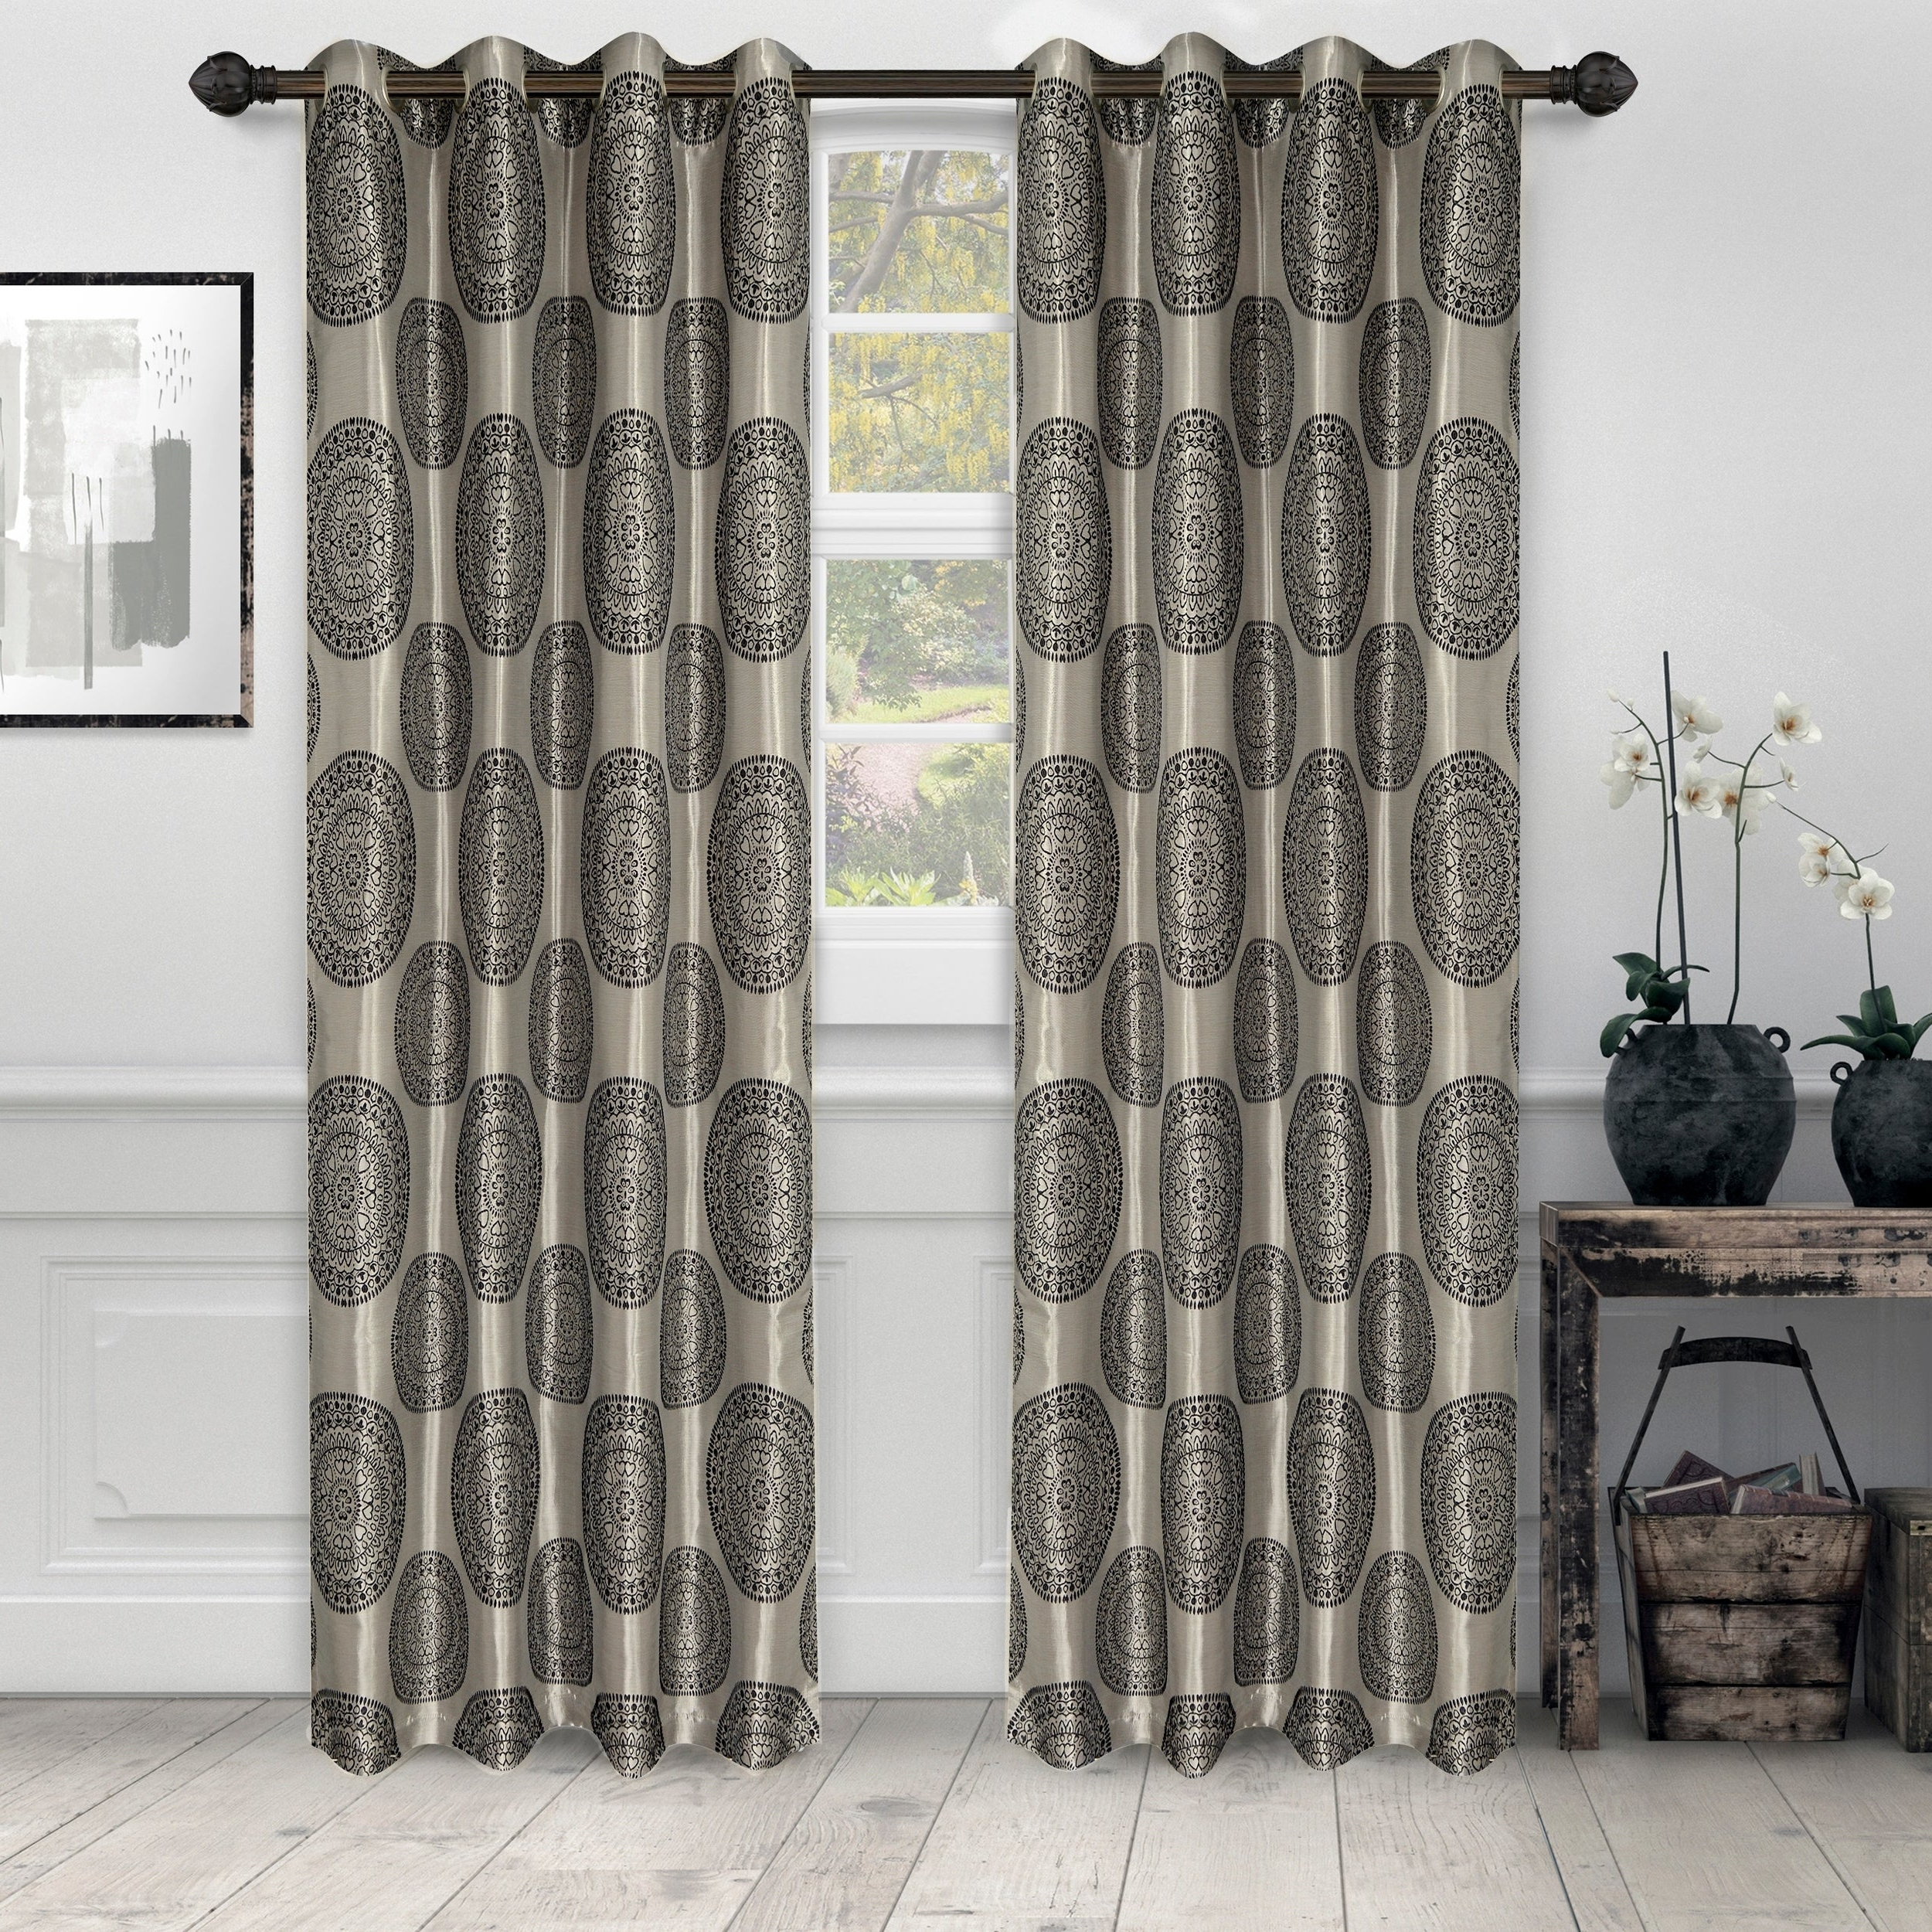 Miranda Haus Labrea Damask Jacquard Grommet Curtain Panels With Regard To 2021 Miranda Haus Elegant Marmore Jacquard Grommet Curtain Panel (set Of 2) (View 15 of 20)